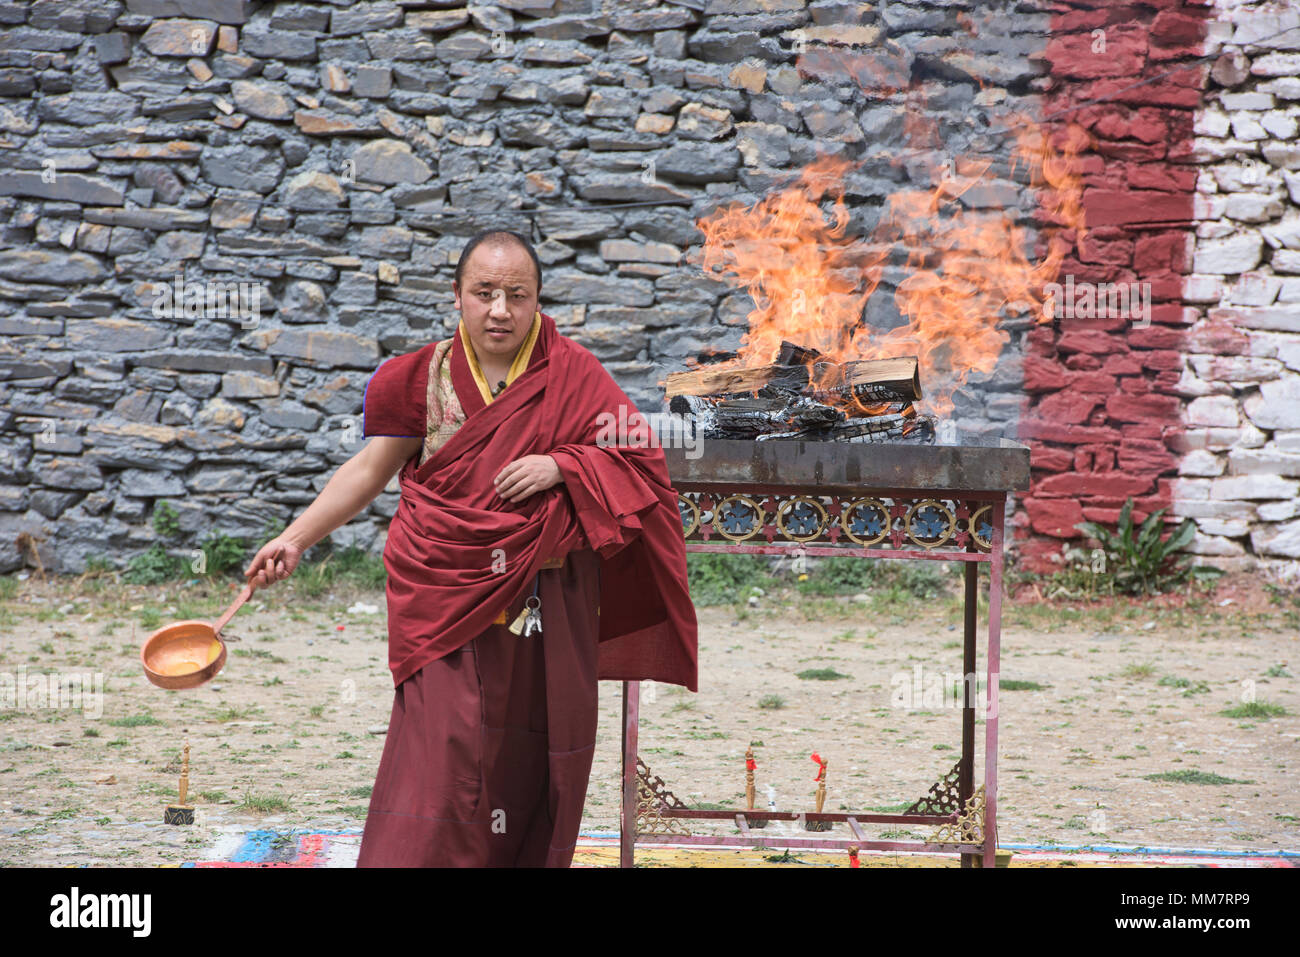 Tibetan monk puts yak butter on the fire at the Jinganqumo purification festival in Dege, Sichuan, China - Stock Image